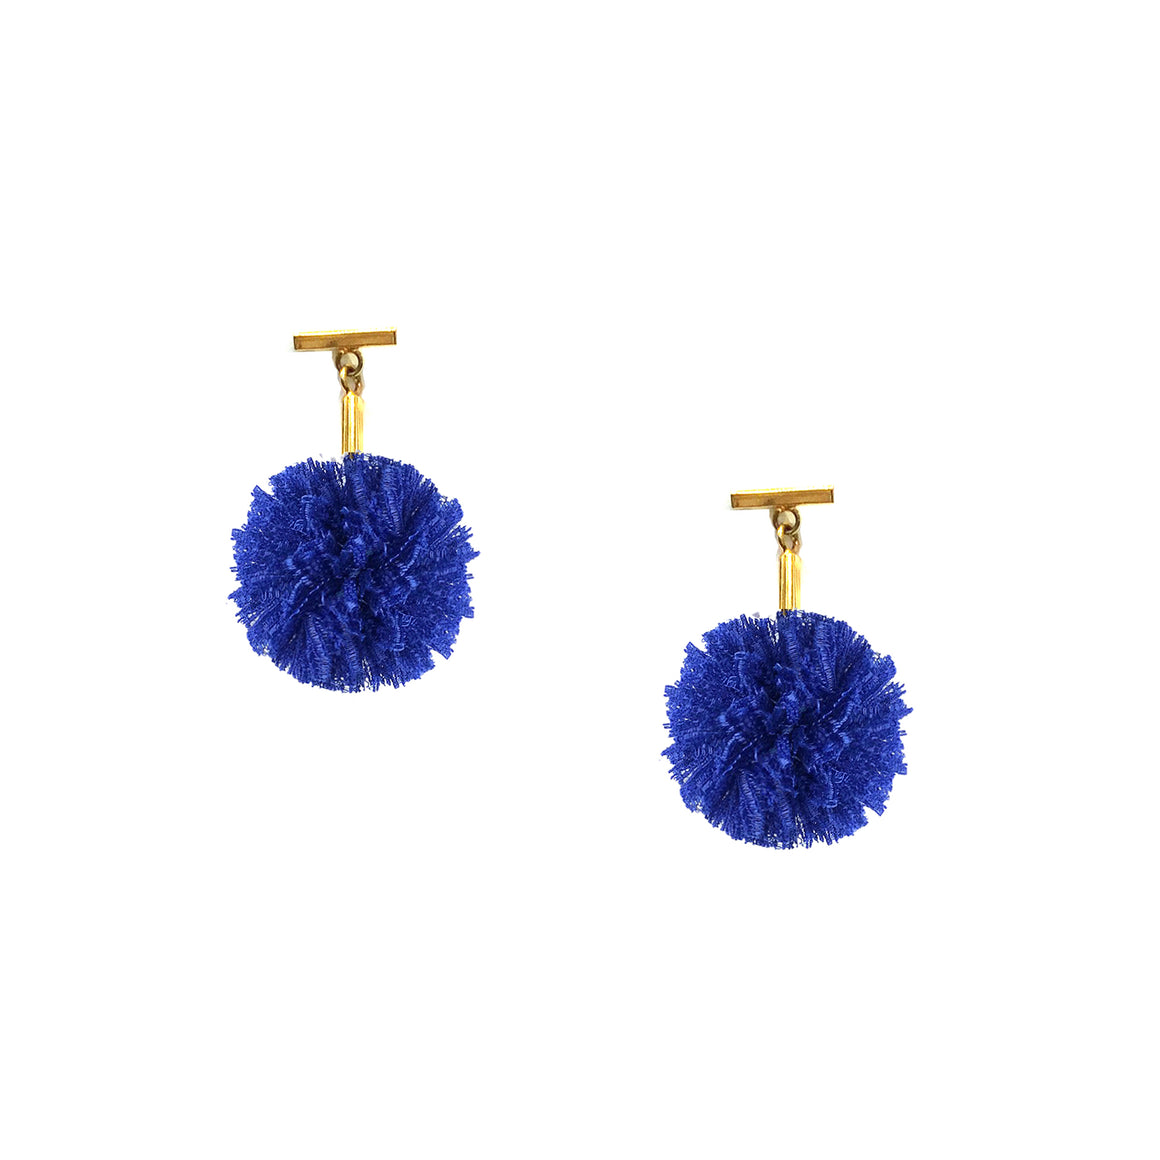 "Cobalt Blue 1"" Lace Pom Pom T Stud Earrings, earring, Tuleste, Tuleste"